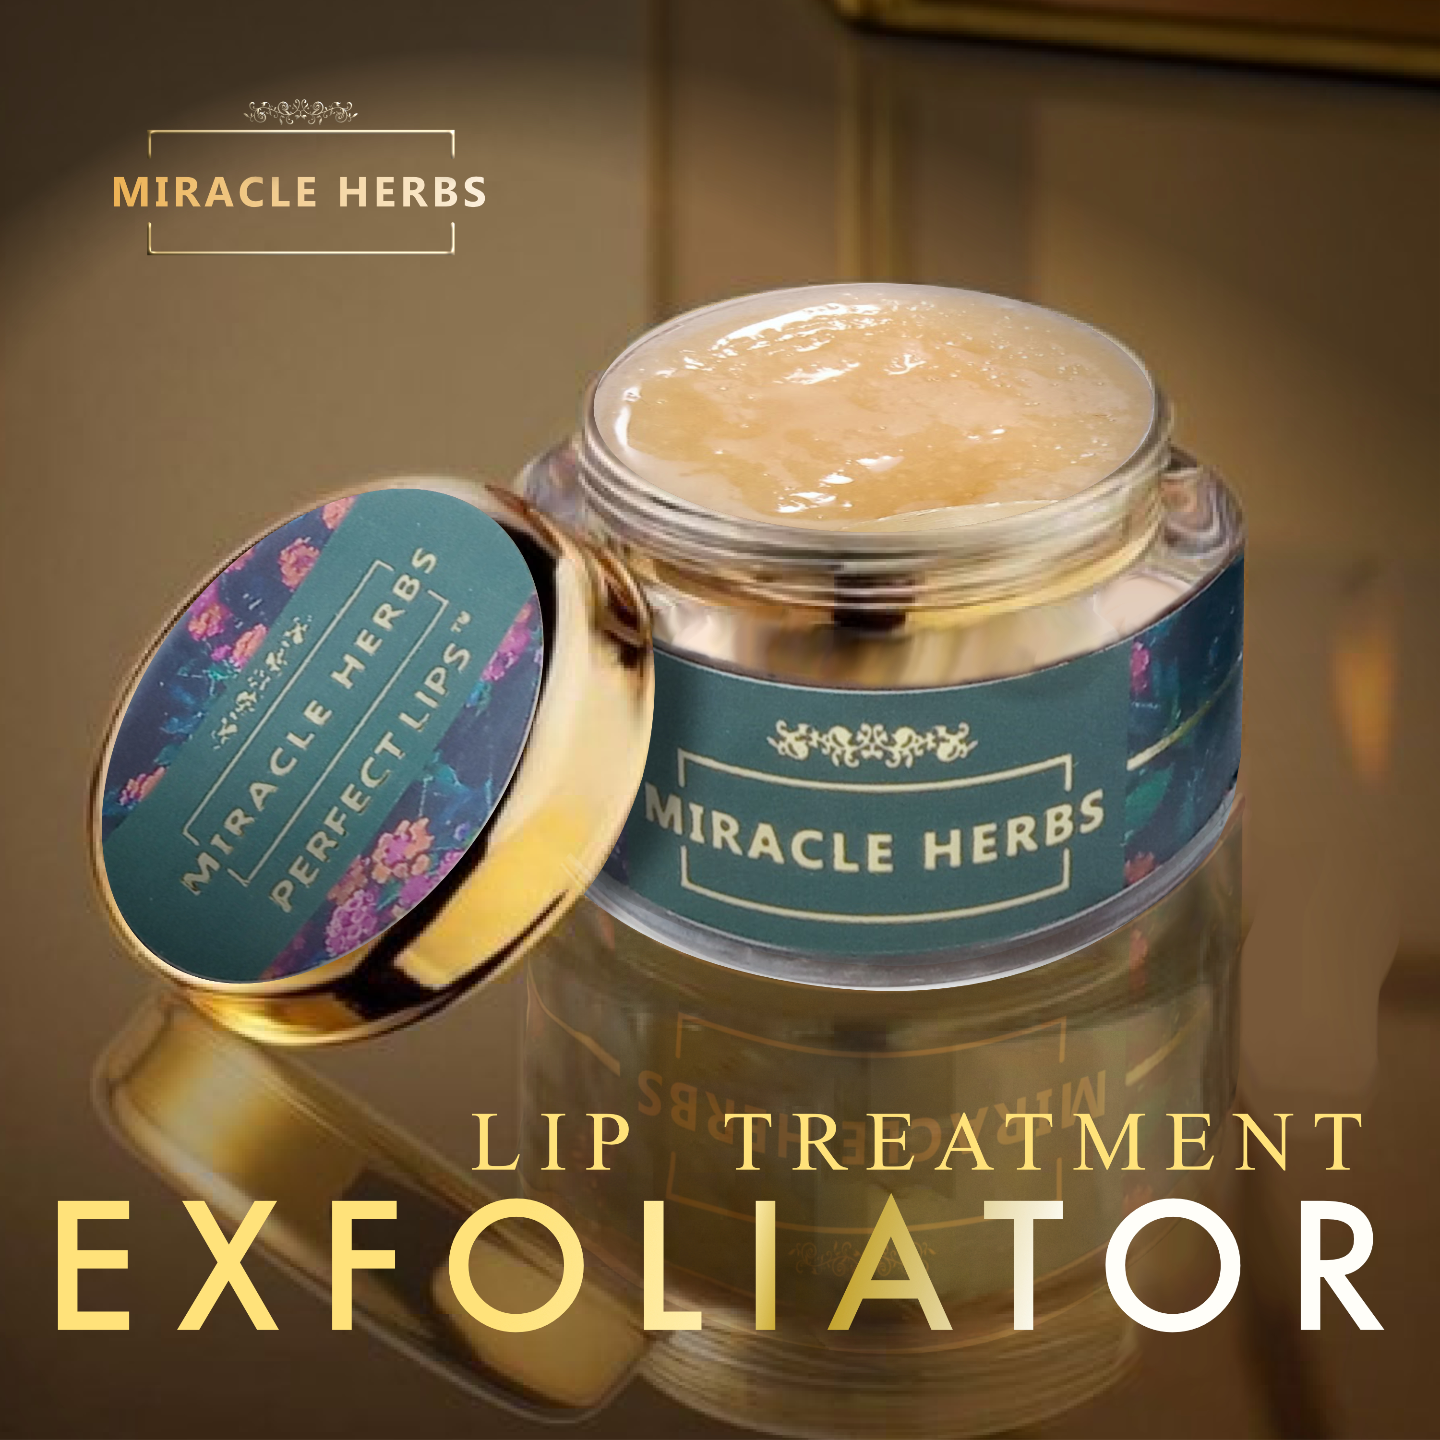 Miracle Herbs PERFECT LIPS lip treatment balm & lip exfoliator 100 Organic Lip Care Exfoliating Scrub and Lip Balm Lip Moisturizer for Chapped Lips Treatment, Lip Repair for Lush Soft Lips,15gm